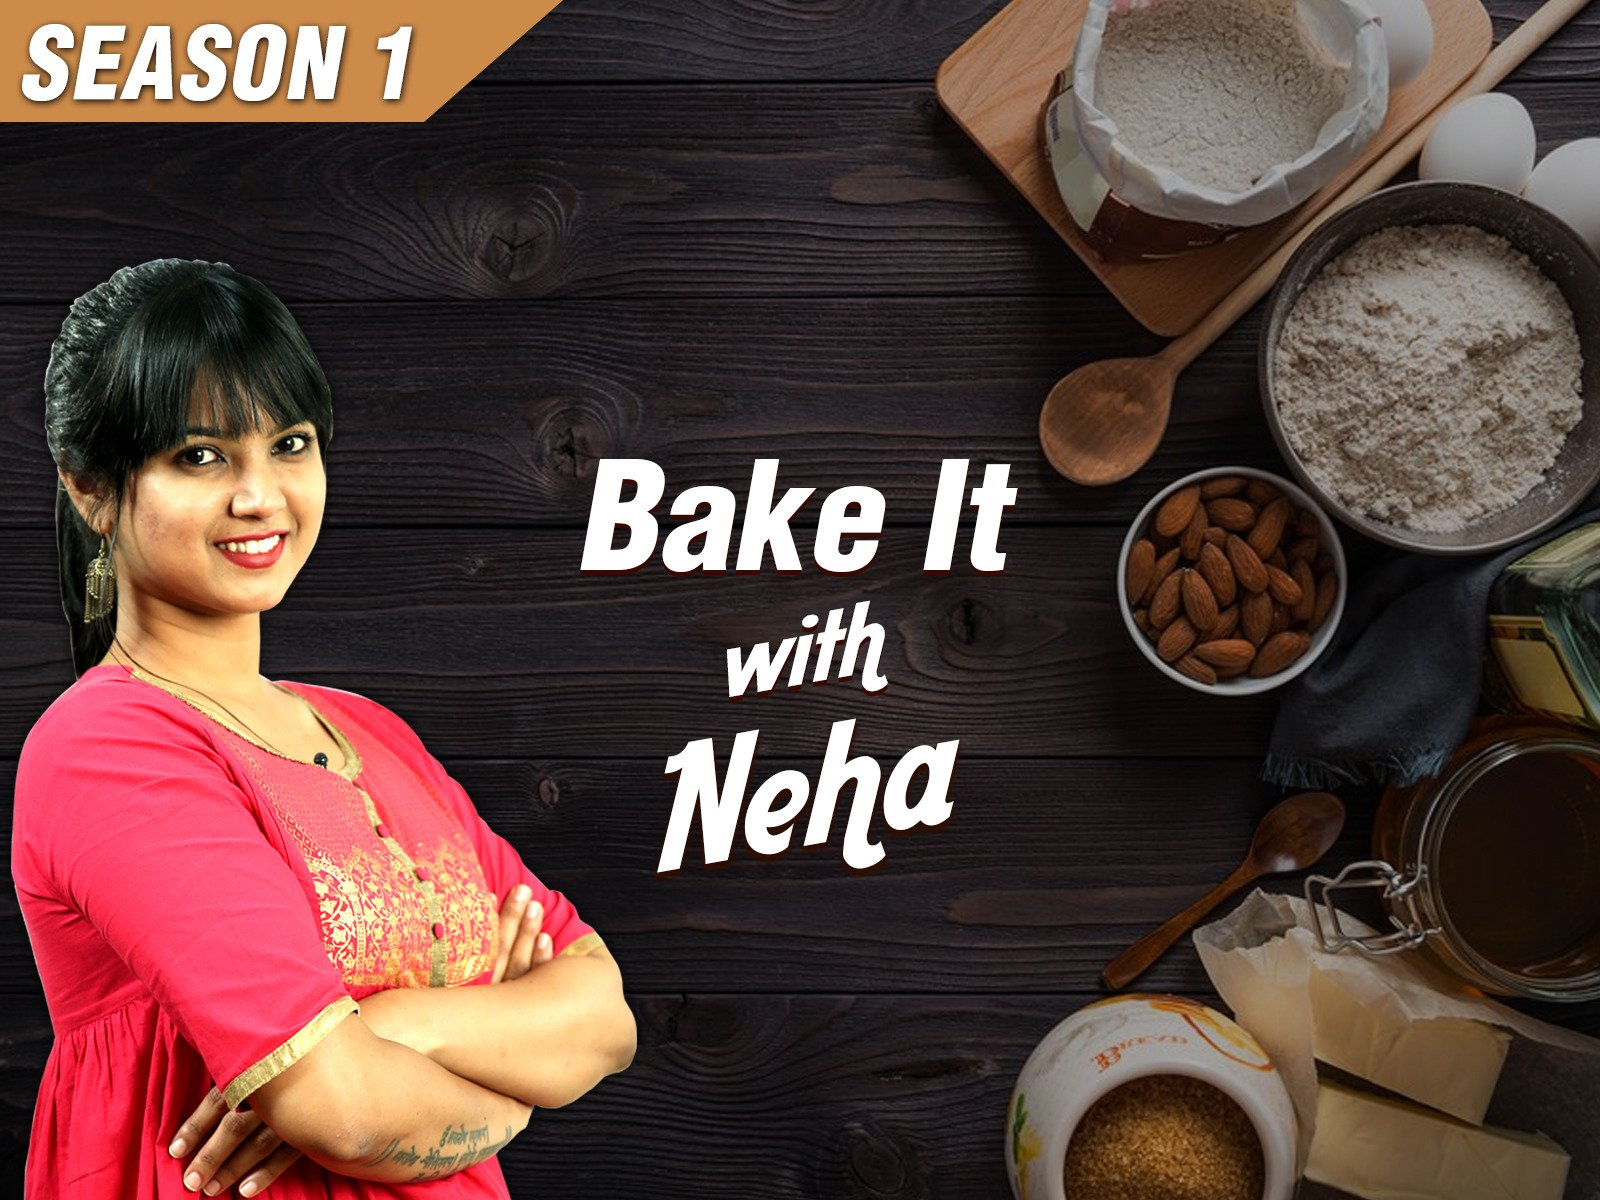 Bake It With Neha - Season 1